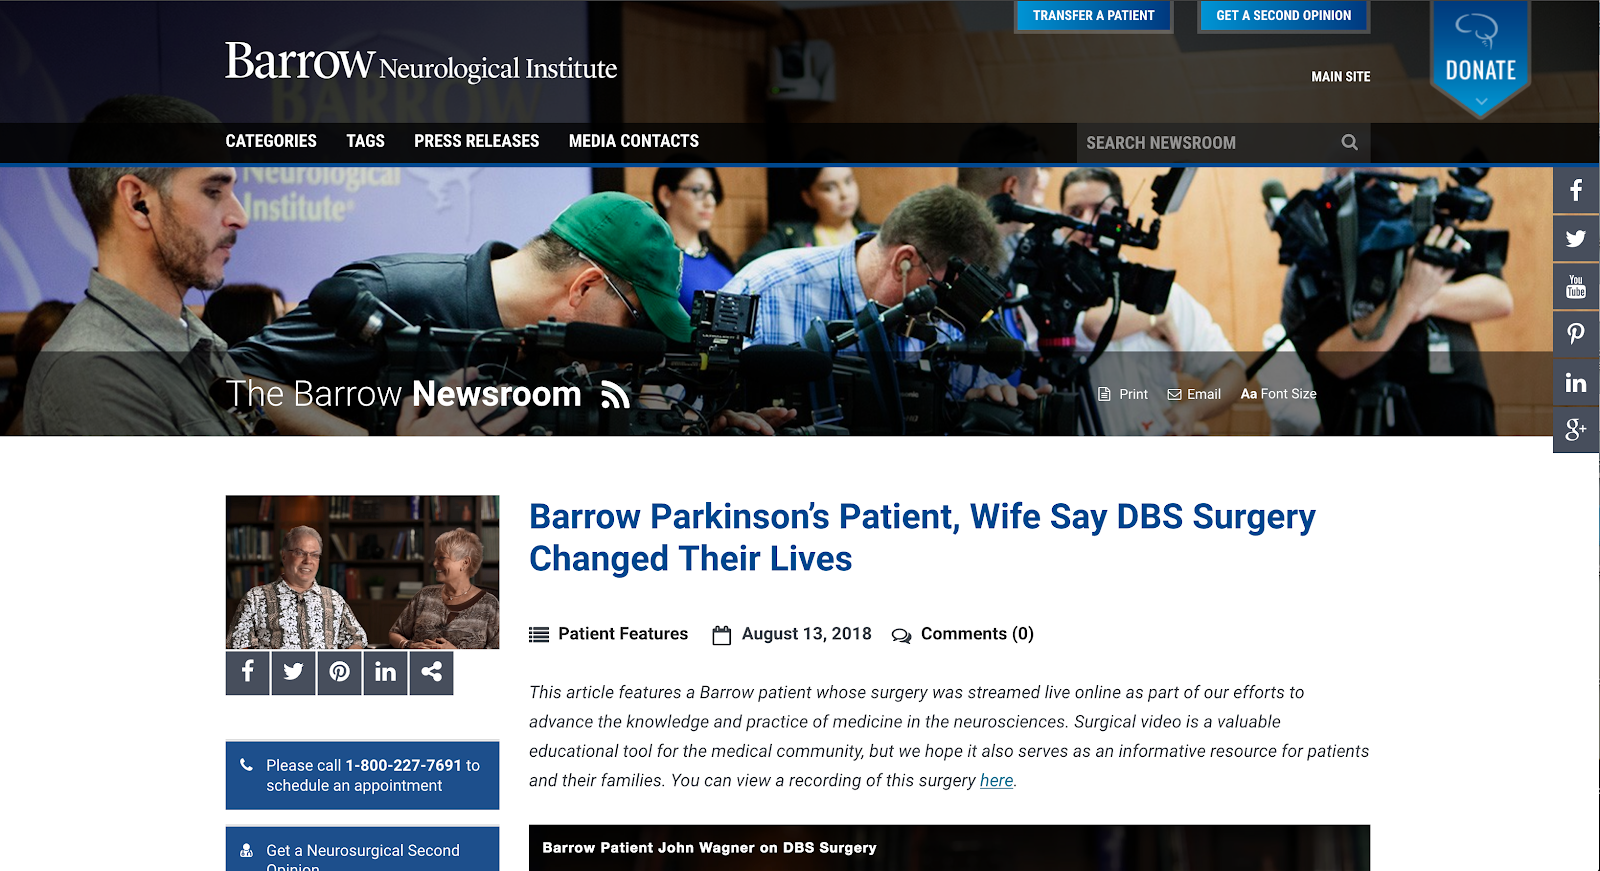 The Barrow Newsroom features live surgery video.